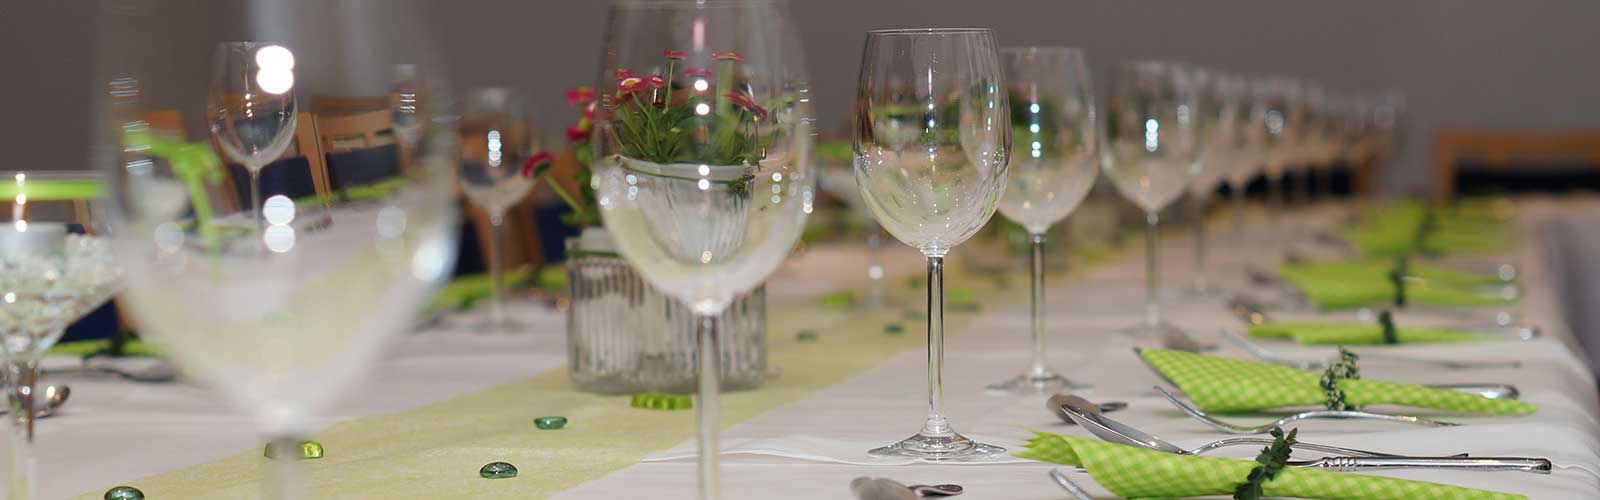 Party rentals in East King and Southern Snohomish Counties